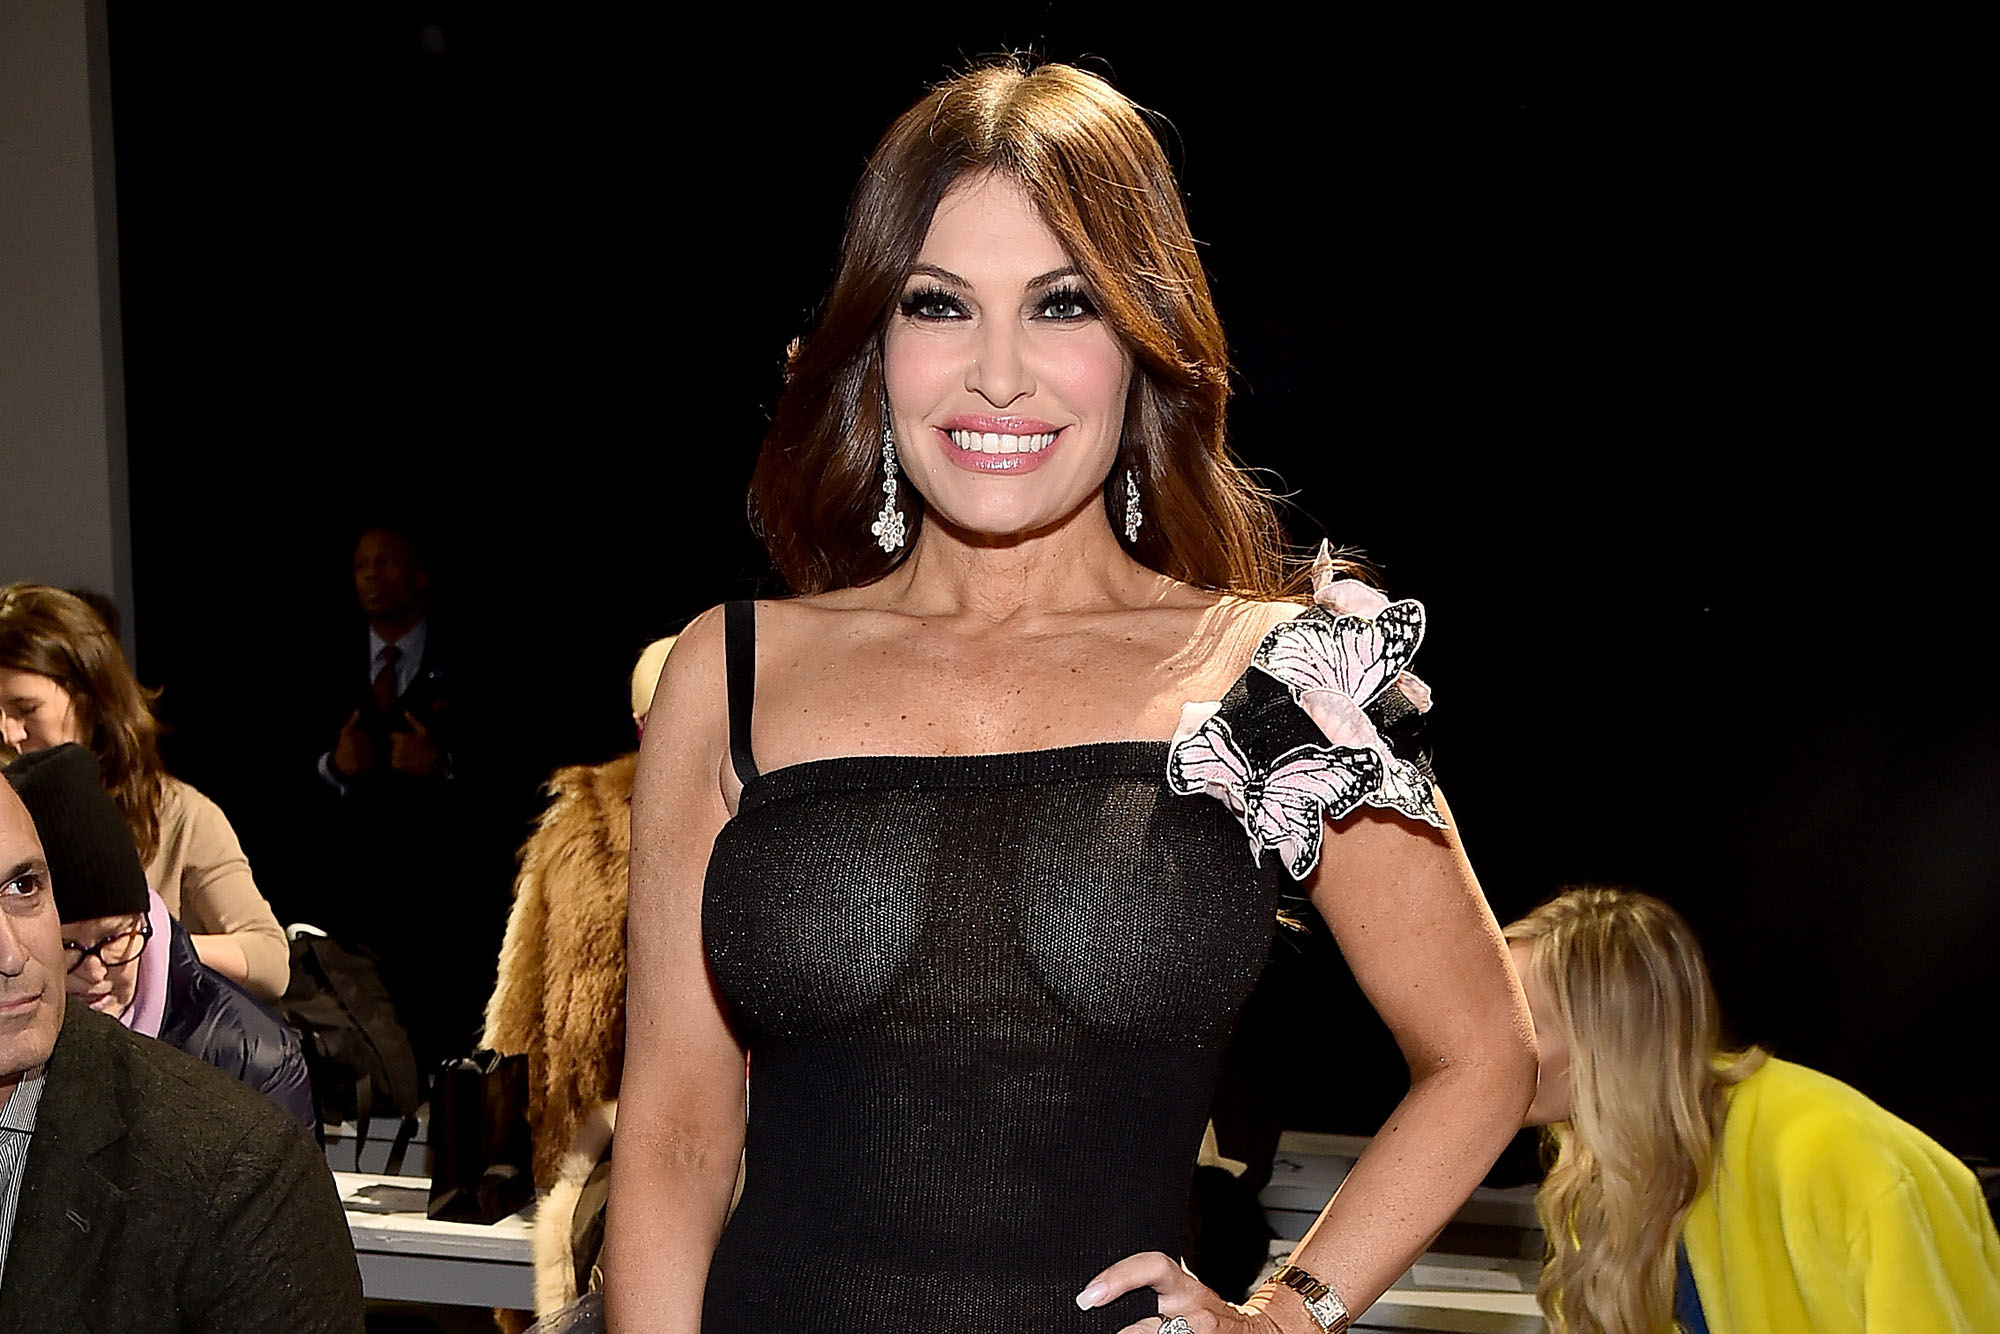 Kimberly Guilfoyle lands top spot in Trump campaign